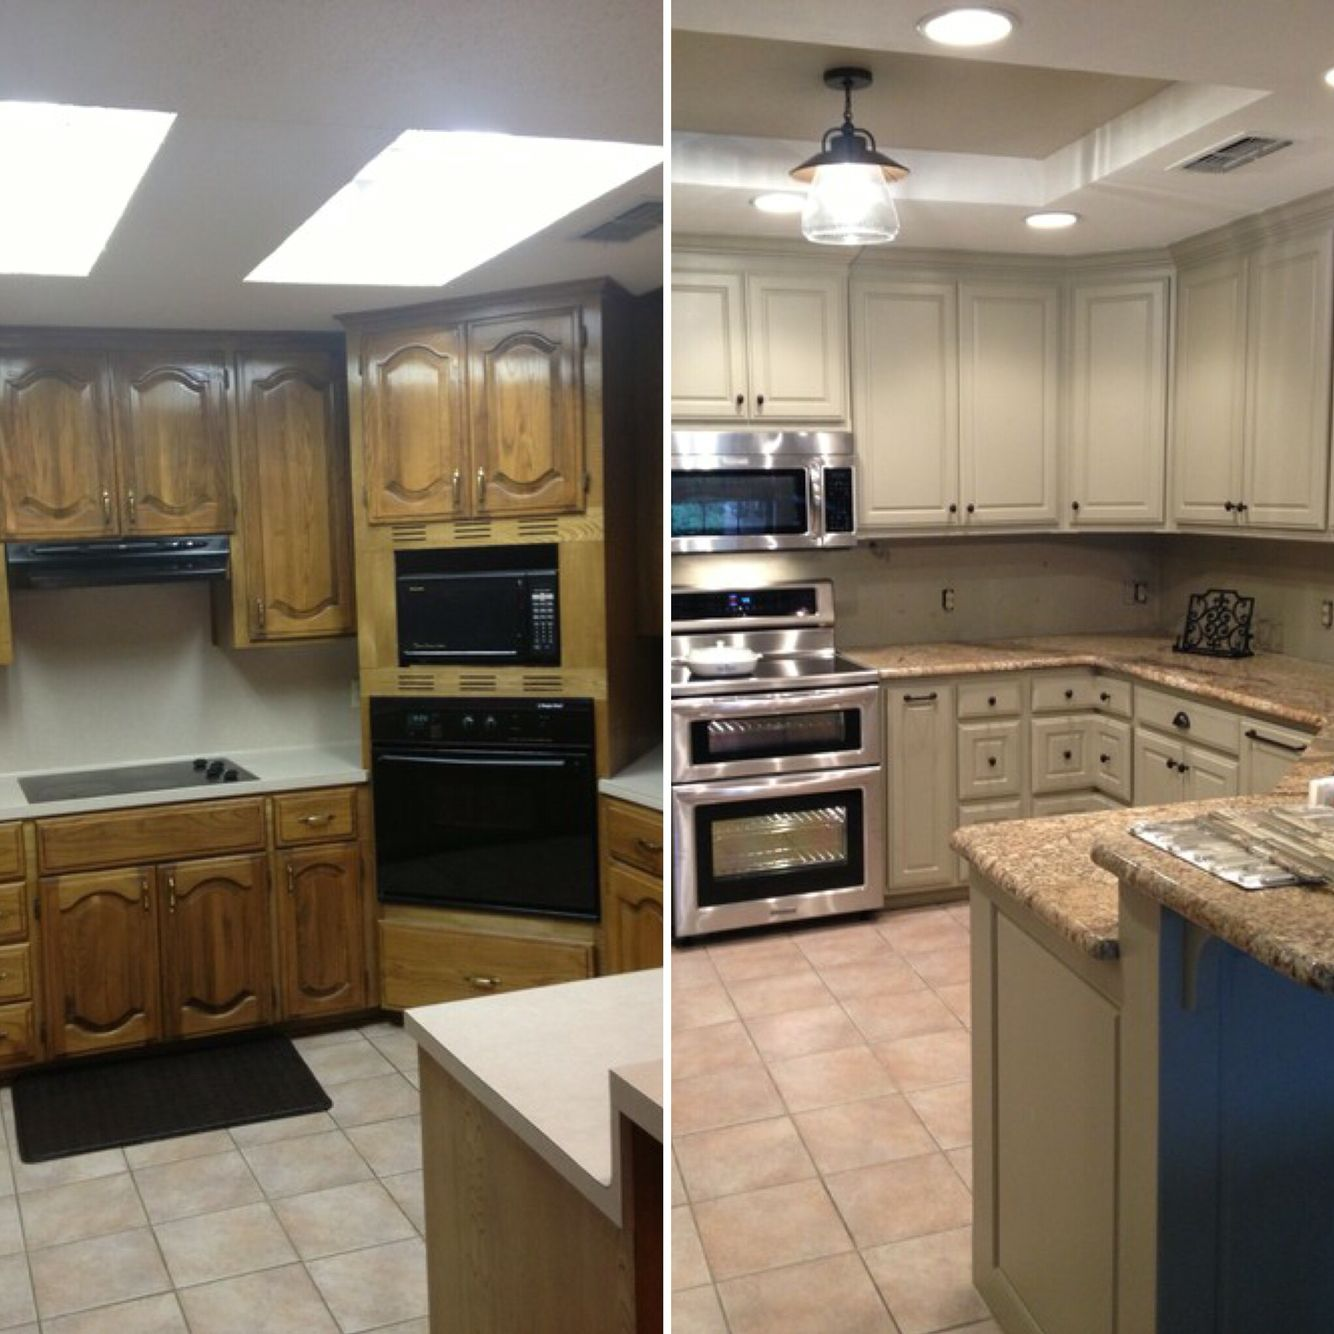 Updating Kitchen Fluorescent Lighting